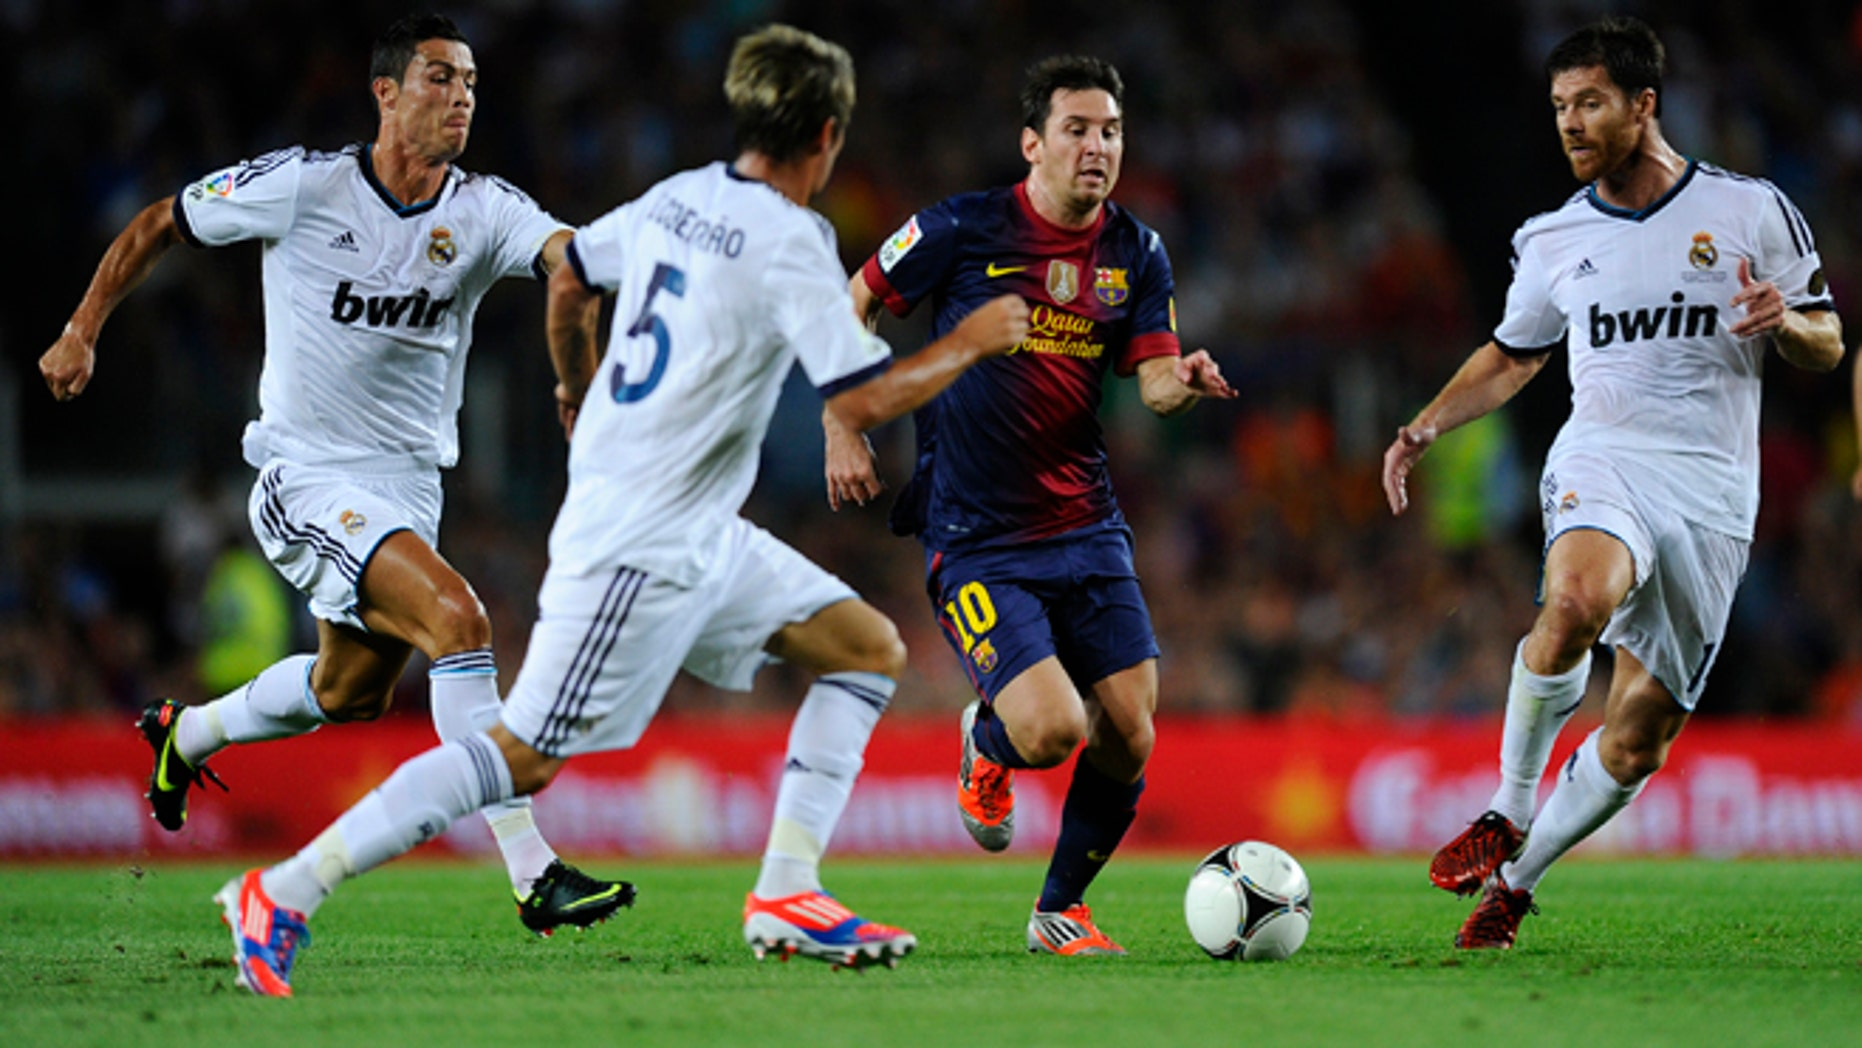 BARCELONA, SPAIN - AUGUST 23: Lionel Messi of FC Barcelona (2ndR) duels for the ball with Cristiano Ronaldo, Fabio Coentrao (2ndL) and Xabi Alonso of Real Madrid CF during the Super Cup first leg match between FC Barcelona and Real Madrid at Camp Nou on August 23, 2012 in Barcelona, Spain.  (Photo by David Ramos/Getty Images)